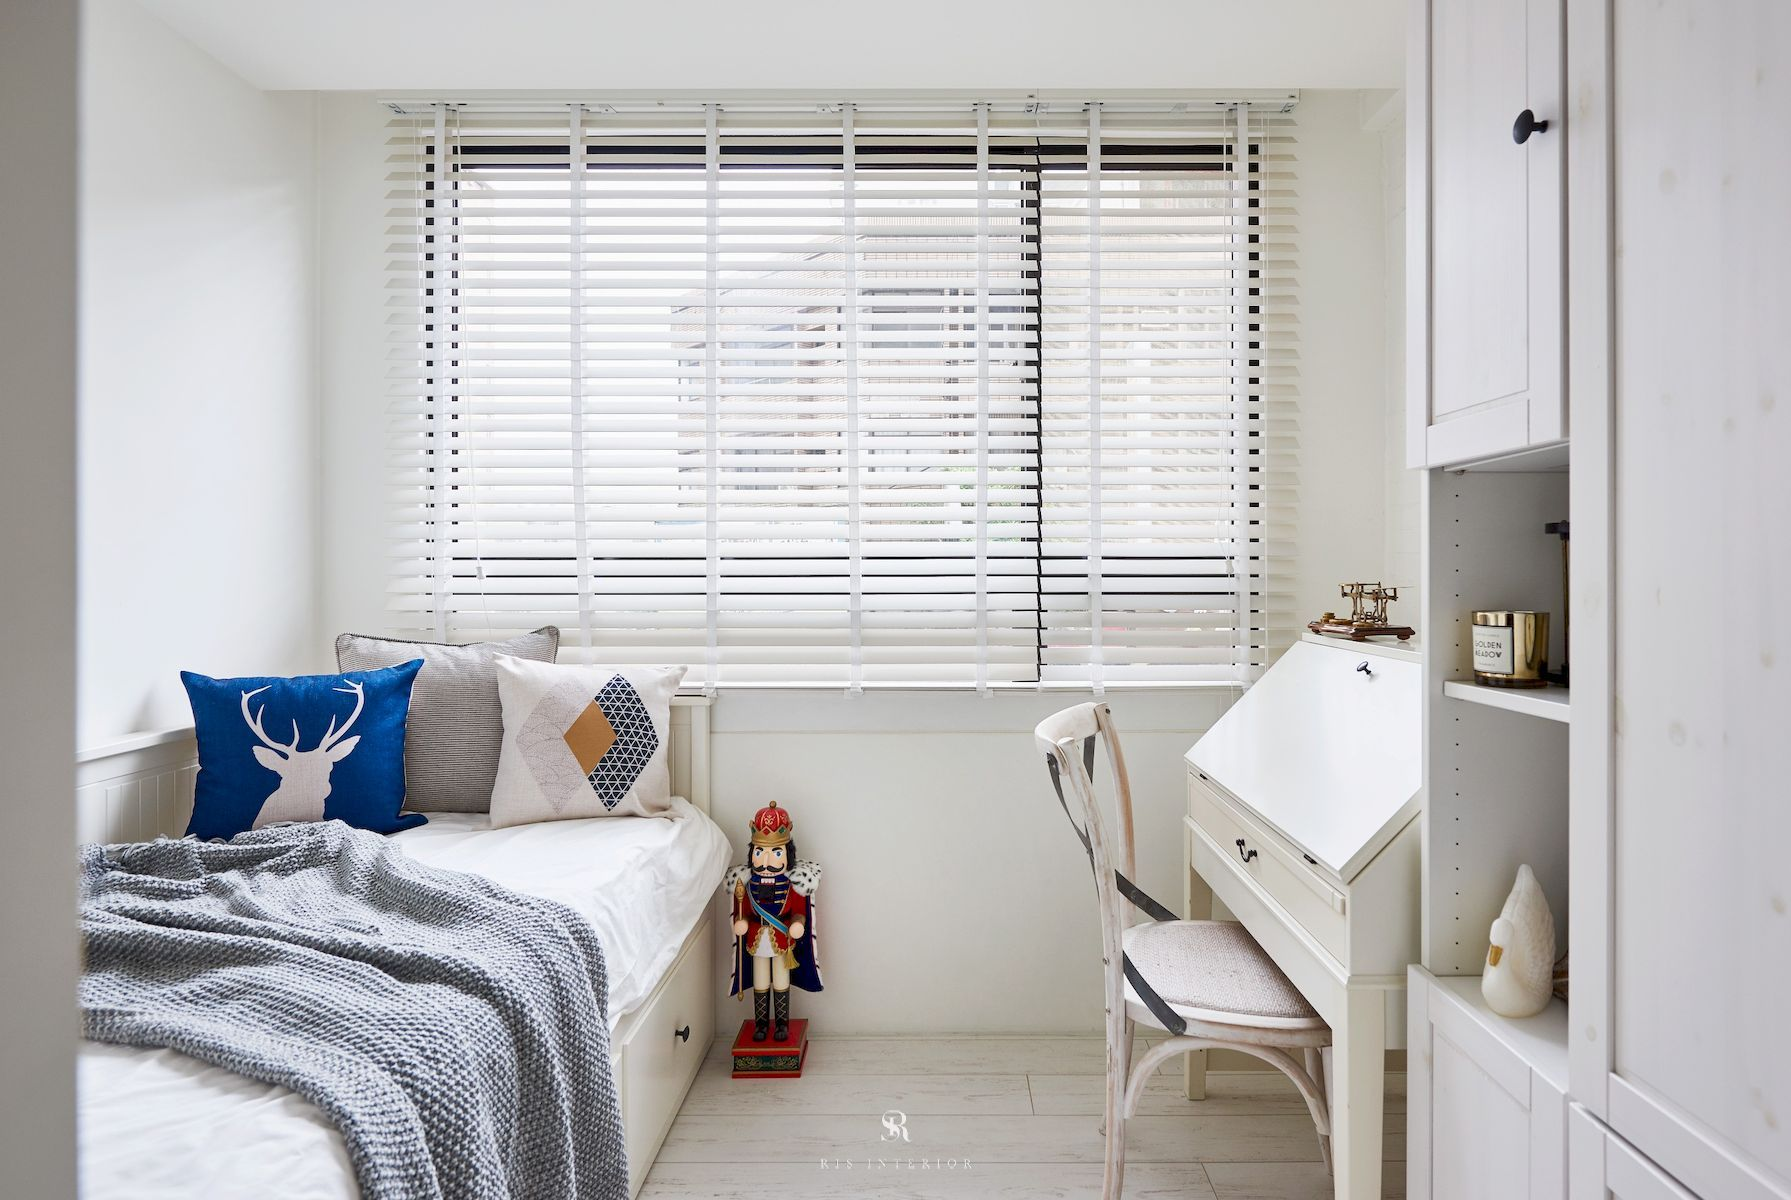 Shabby Chic Colors For Walls : Styles shabby chic colors white shutters features bedroom and